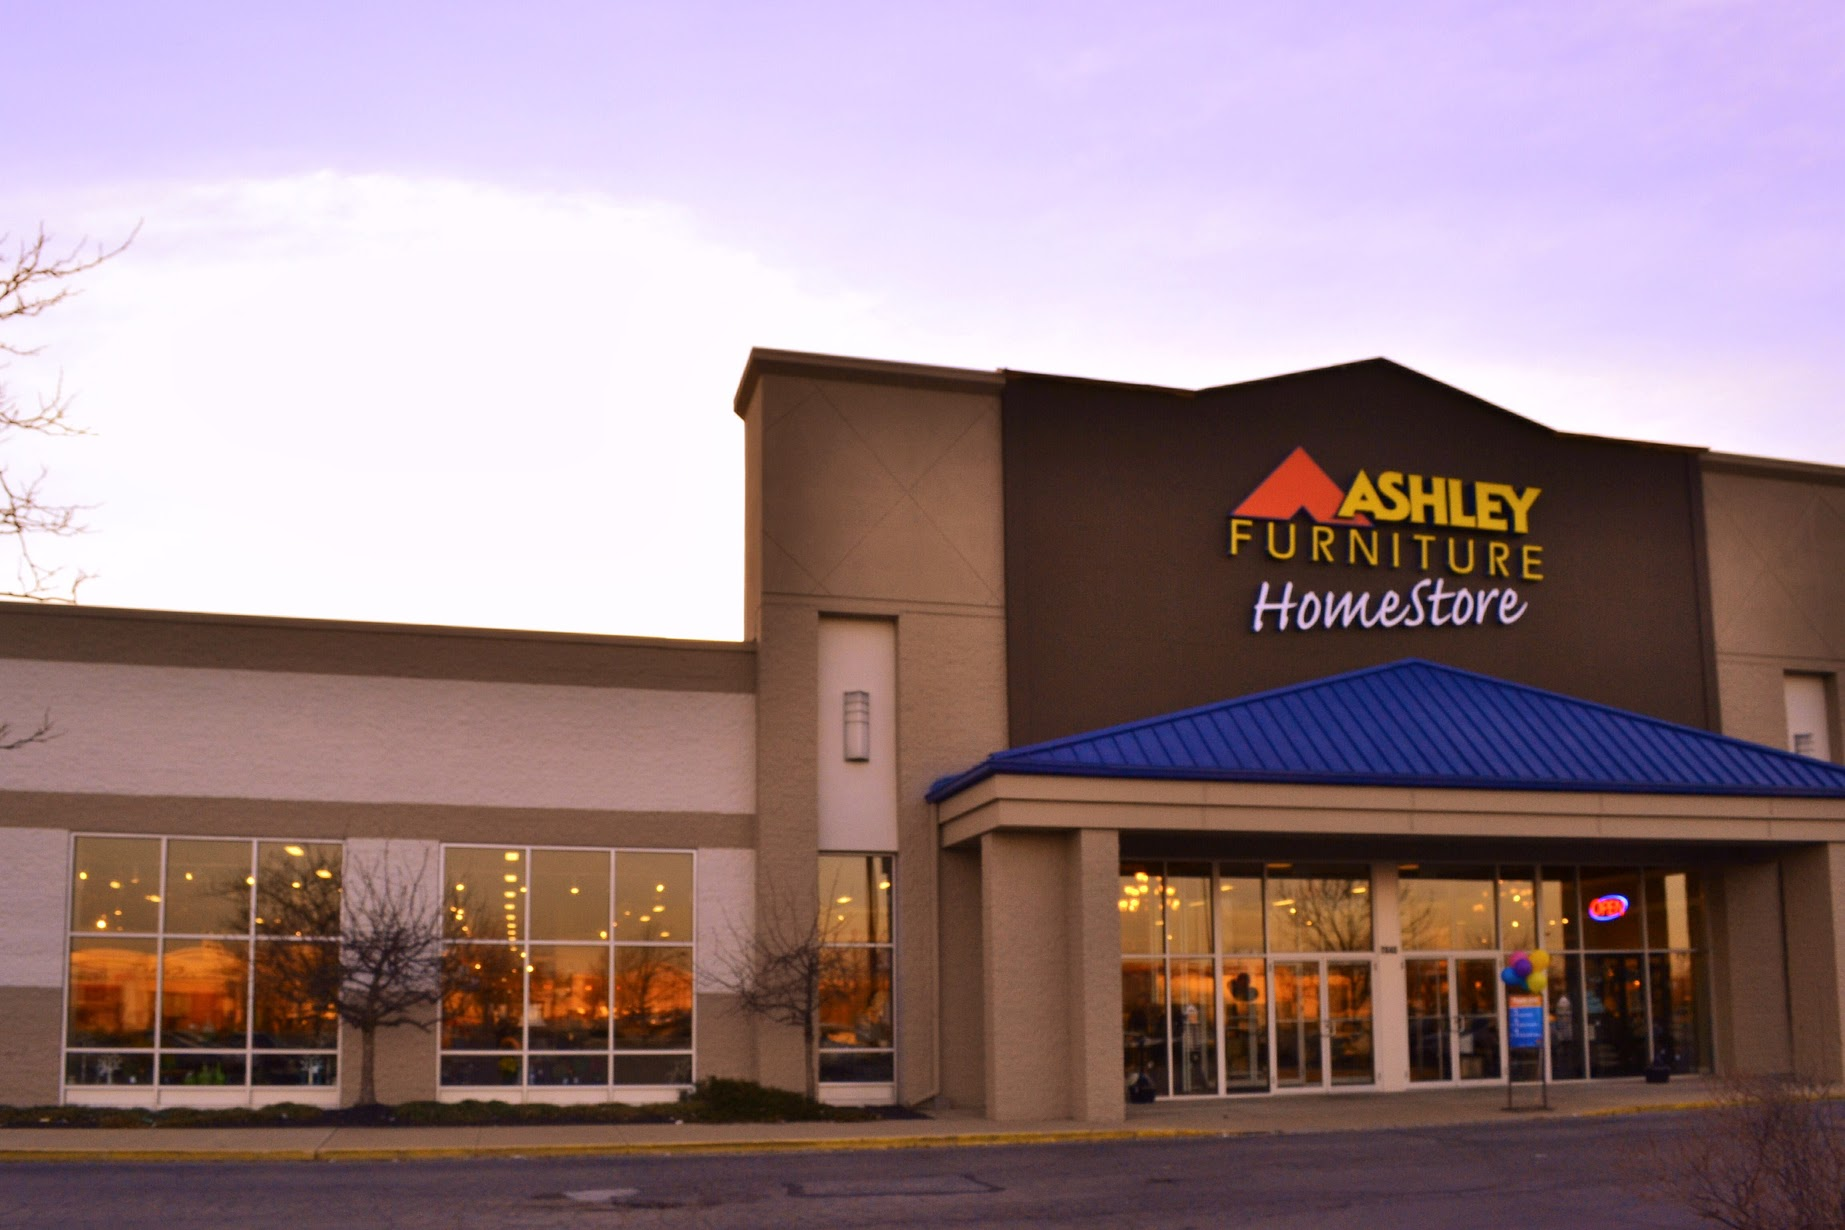 Media Ashley Furniture Homestore New York Ohio Pennsylvania